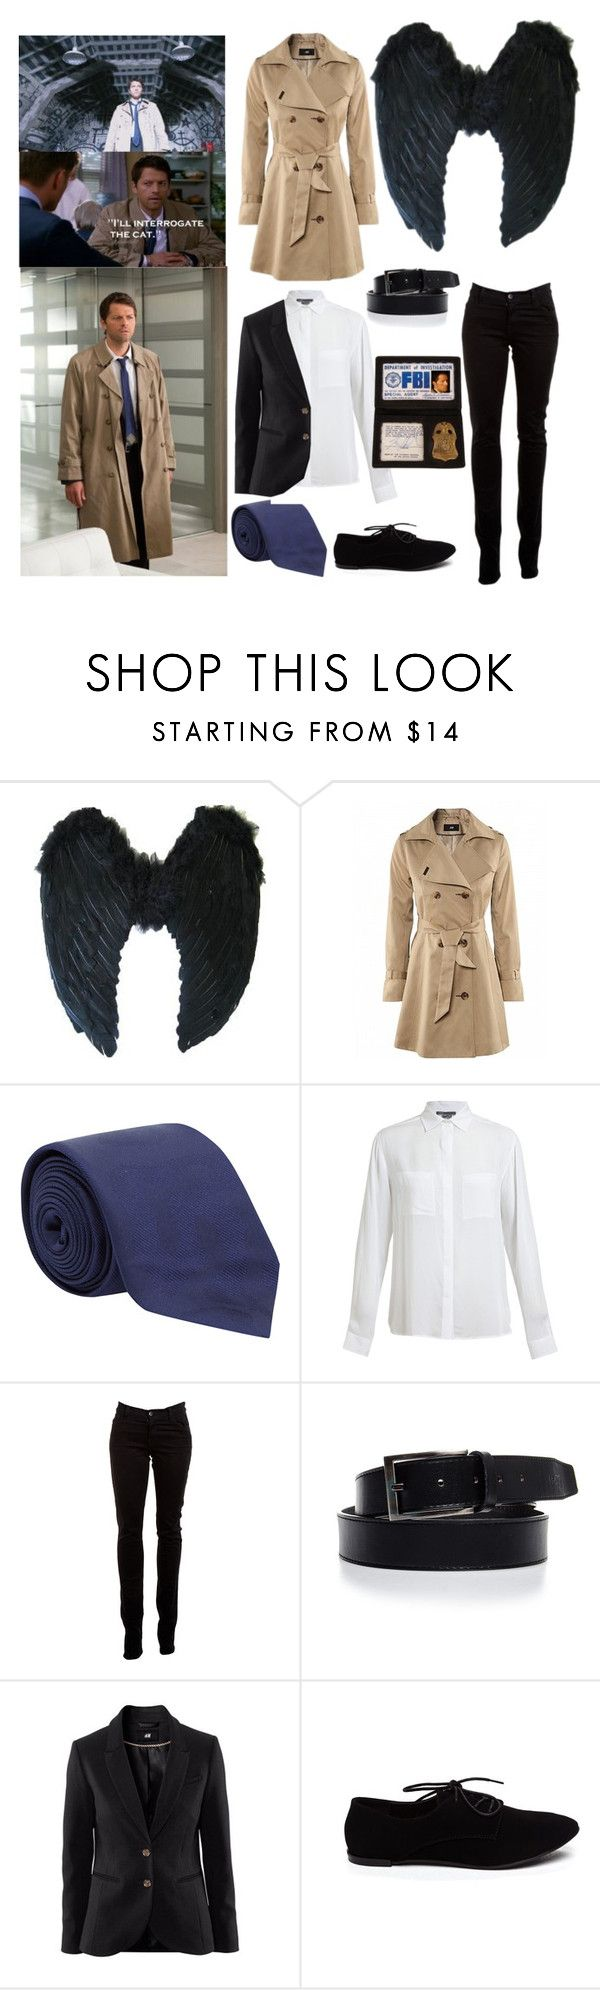 cosplay- castiel from supernatural | halloween costume | pinterest